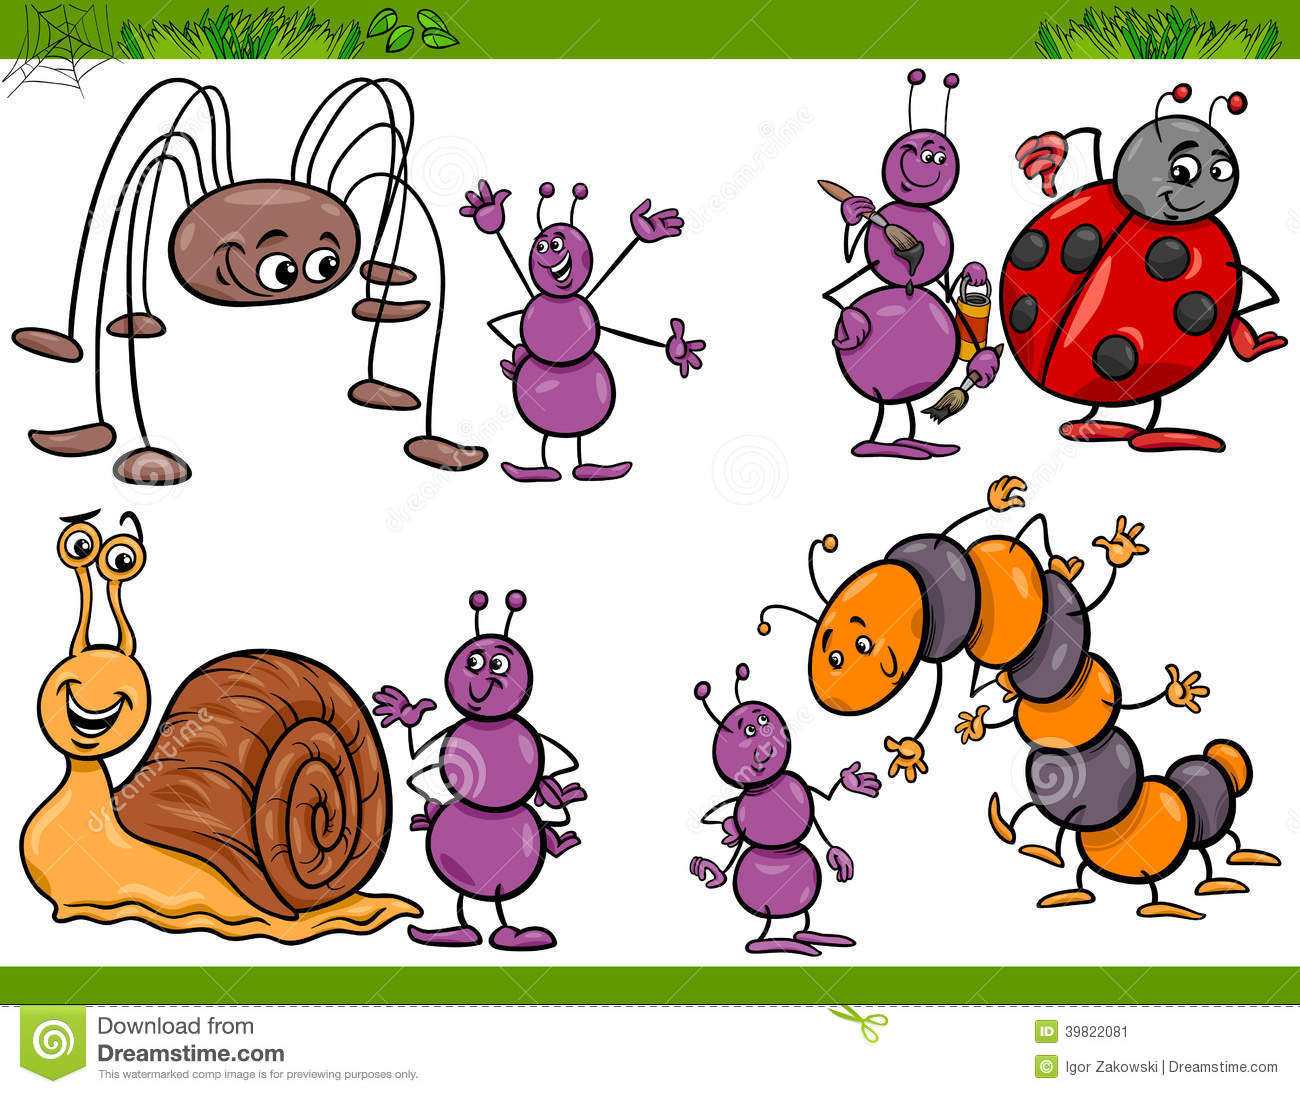 Caterpillar cartoon bugs vector illustration